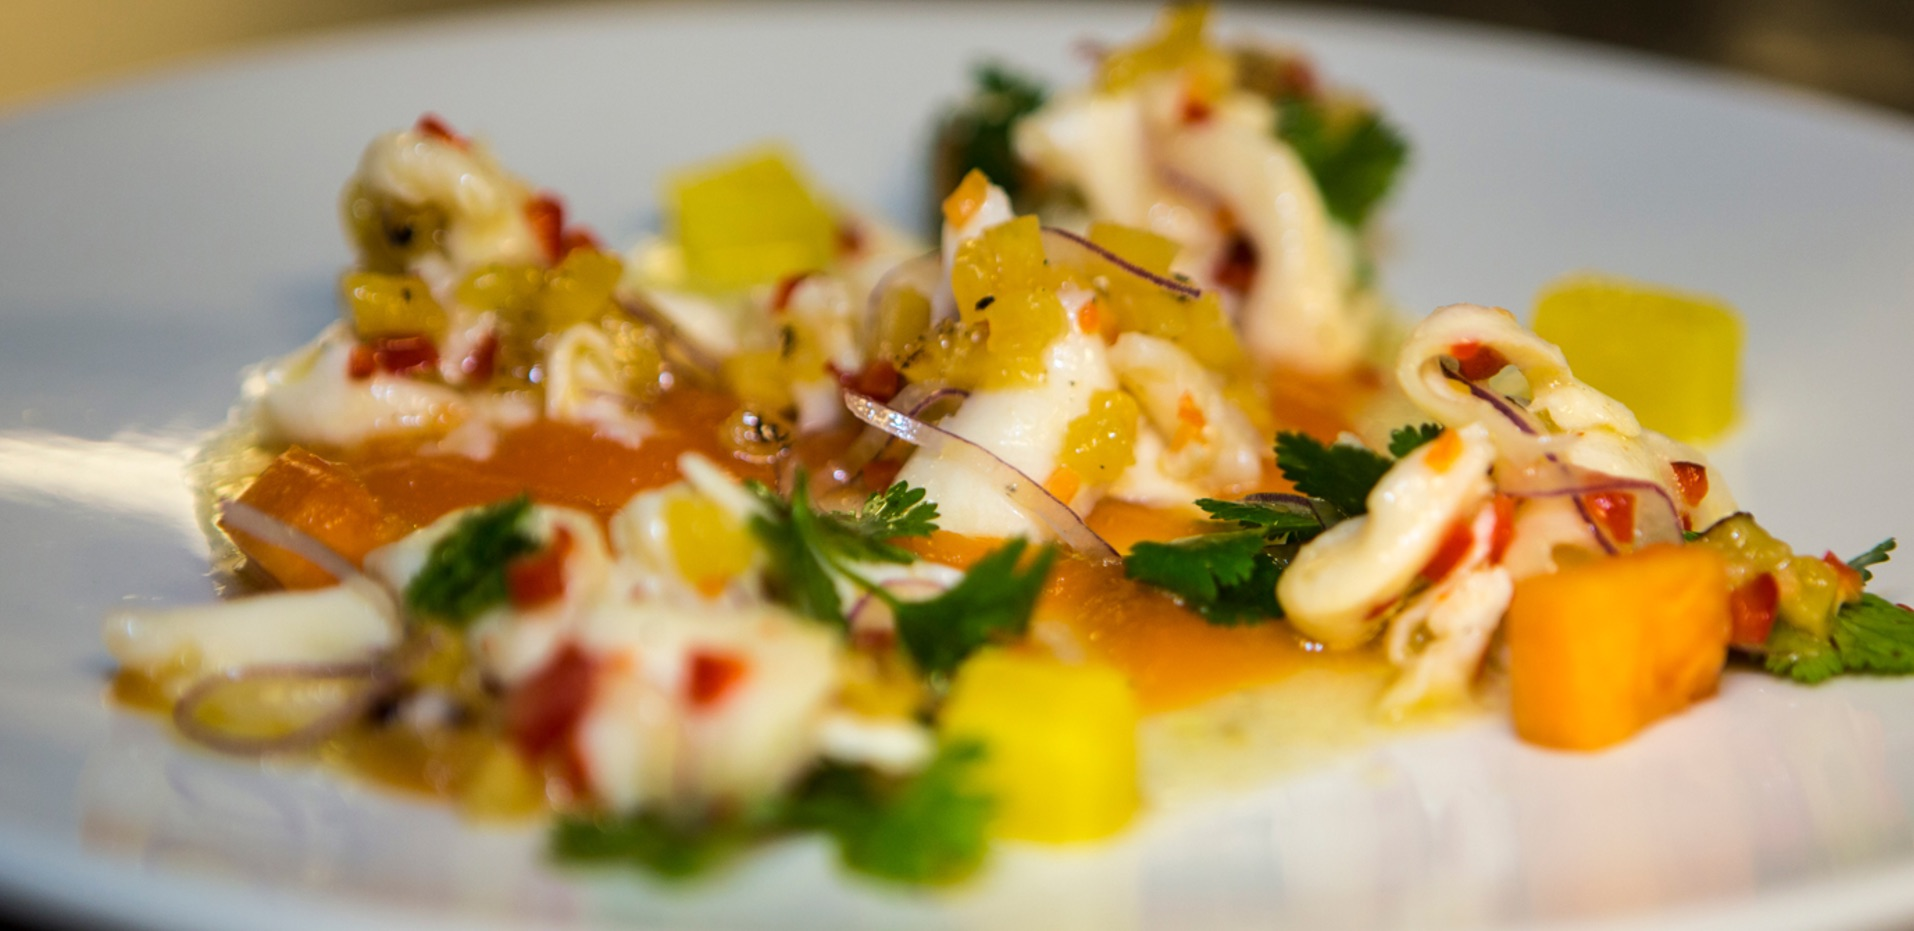 Mina Test Kitchen's ceviche